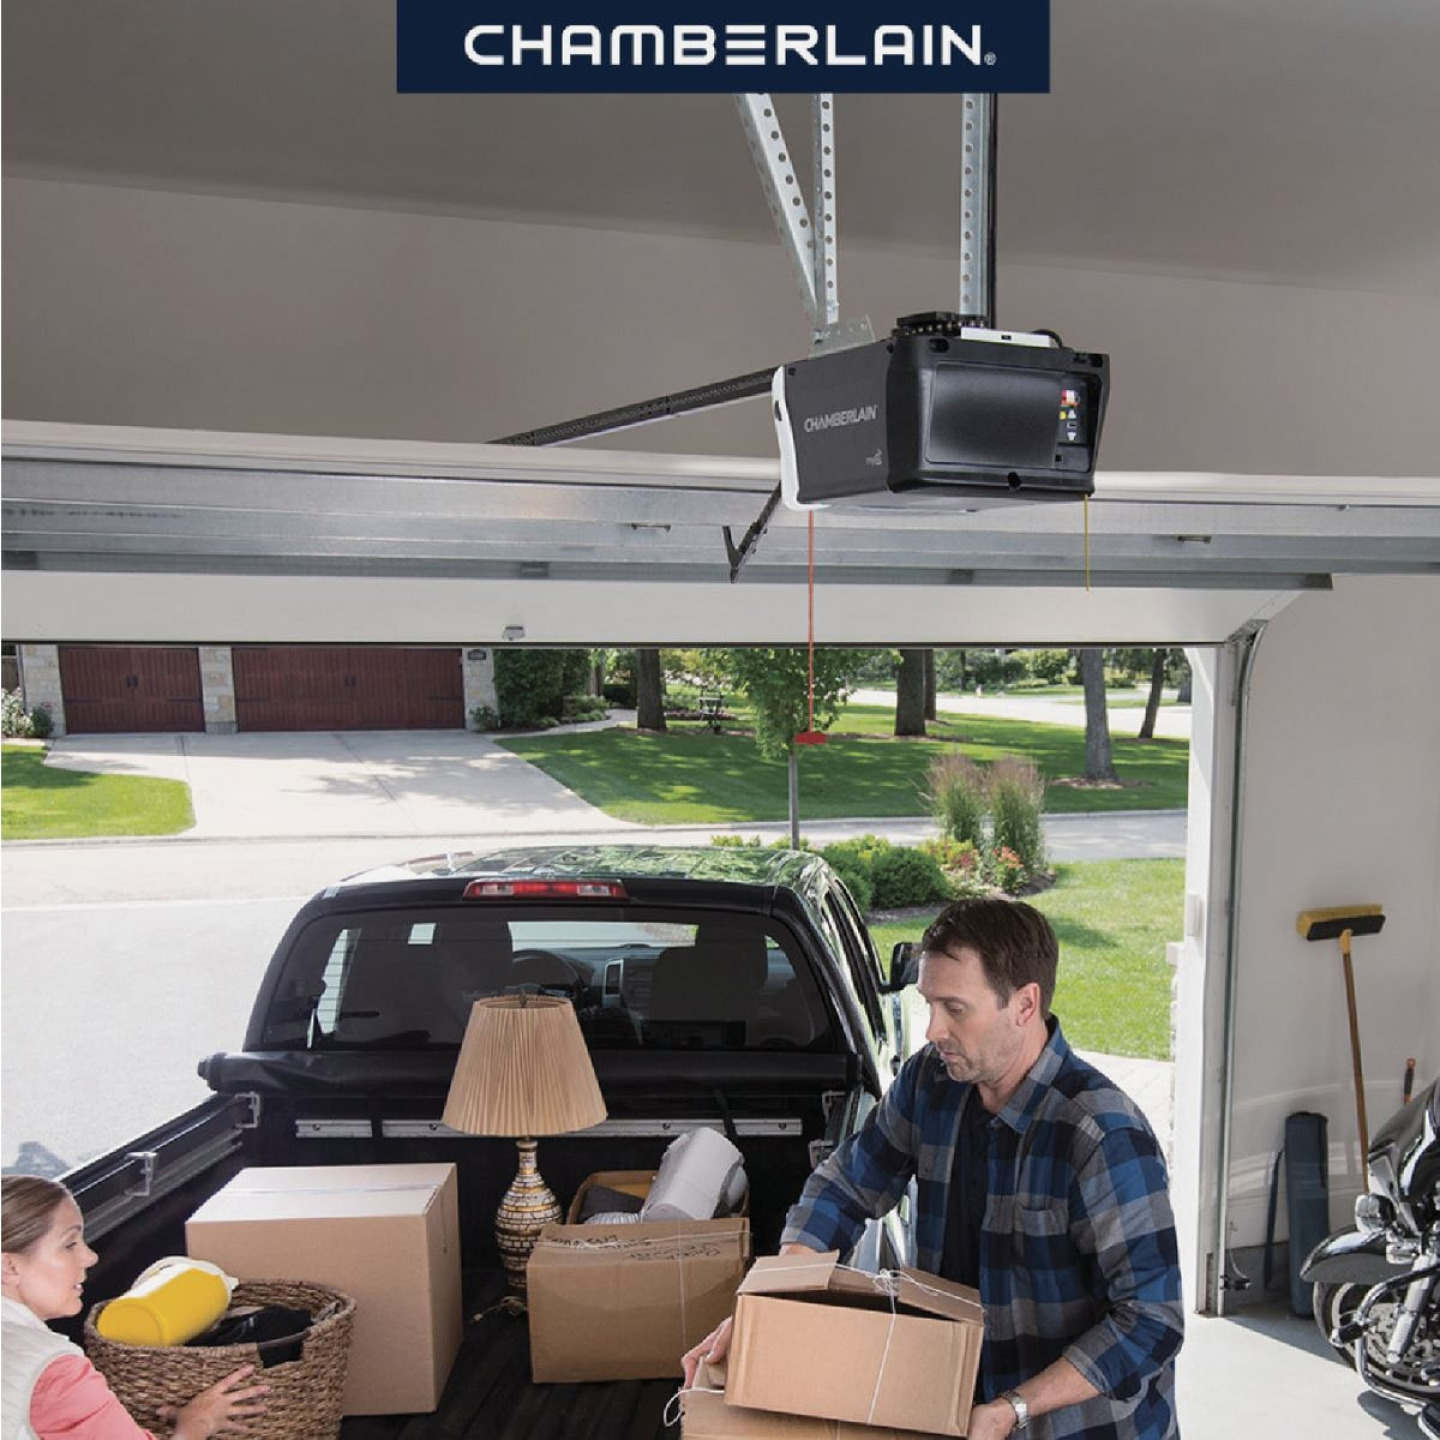 Chamberlain 1/2 HP Smartphone-Controlled Durable Chain Drive Garage Door Opener with WiFi and MED Lifting Power Image 2